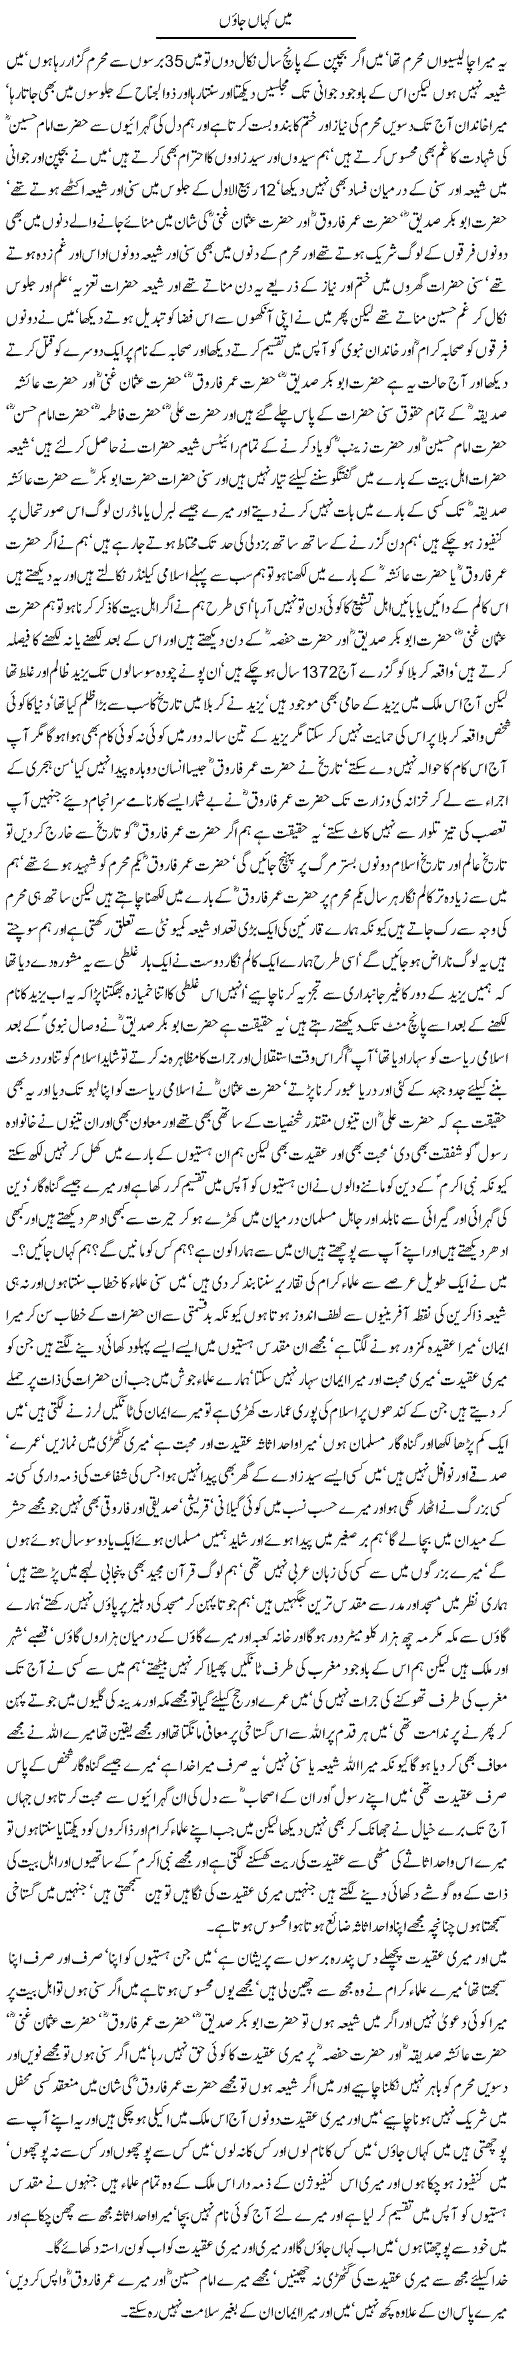 """Javed Choudhry is, undoubtedly, one of the most prominent journalists of Pakistan. Opinion poll surveys conducted by a number of national and international organizations have established that his column """"Zero Point"""" is the most read column in Pakistan."""